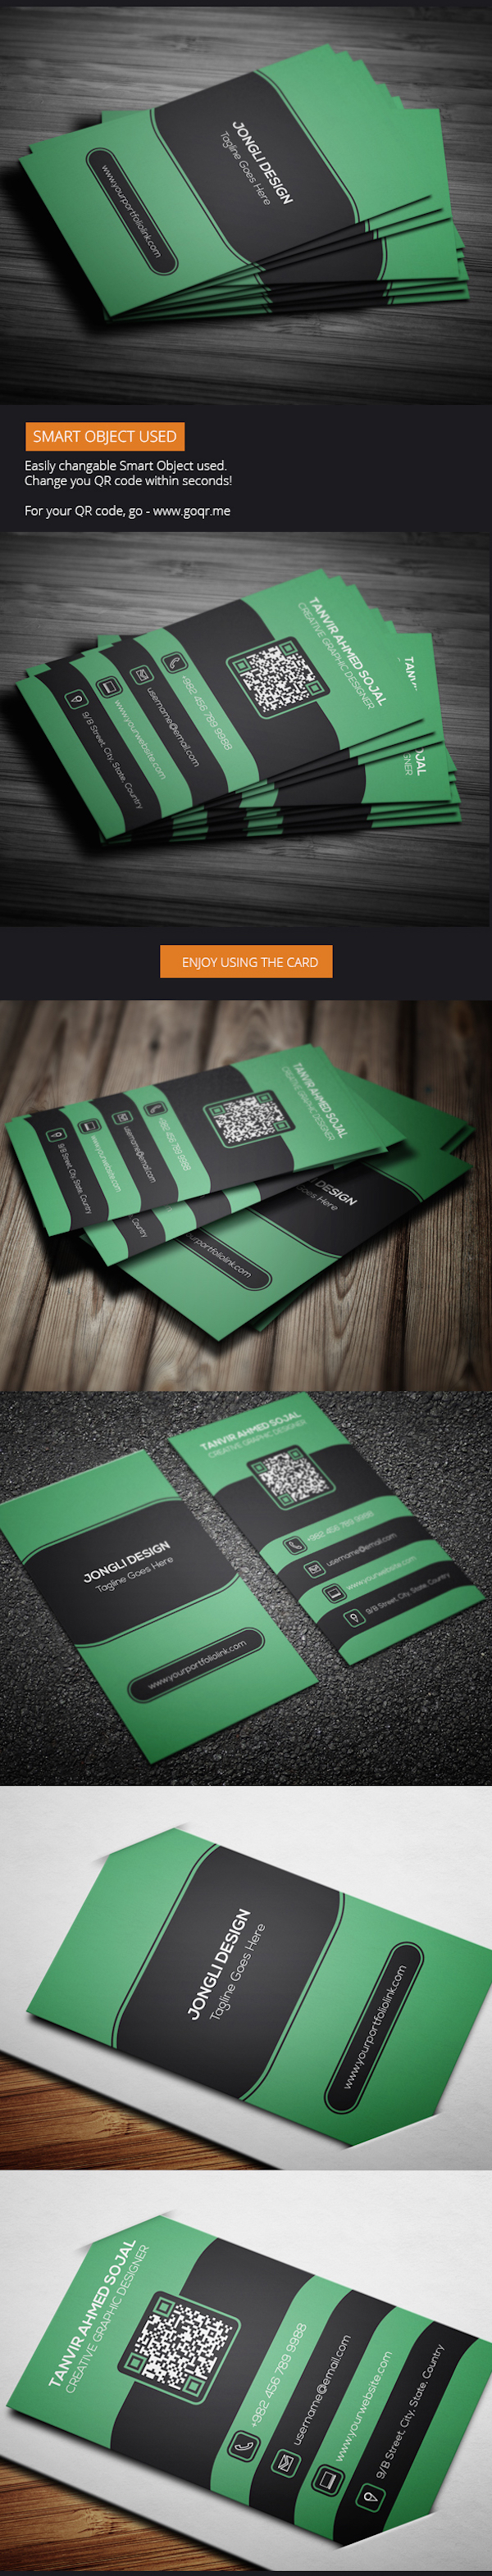 40 latest free business card psd templates devzum free business card psd templates reheart Image collections